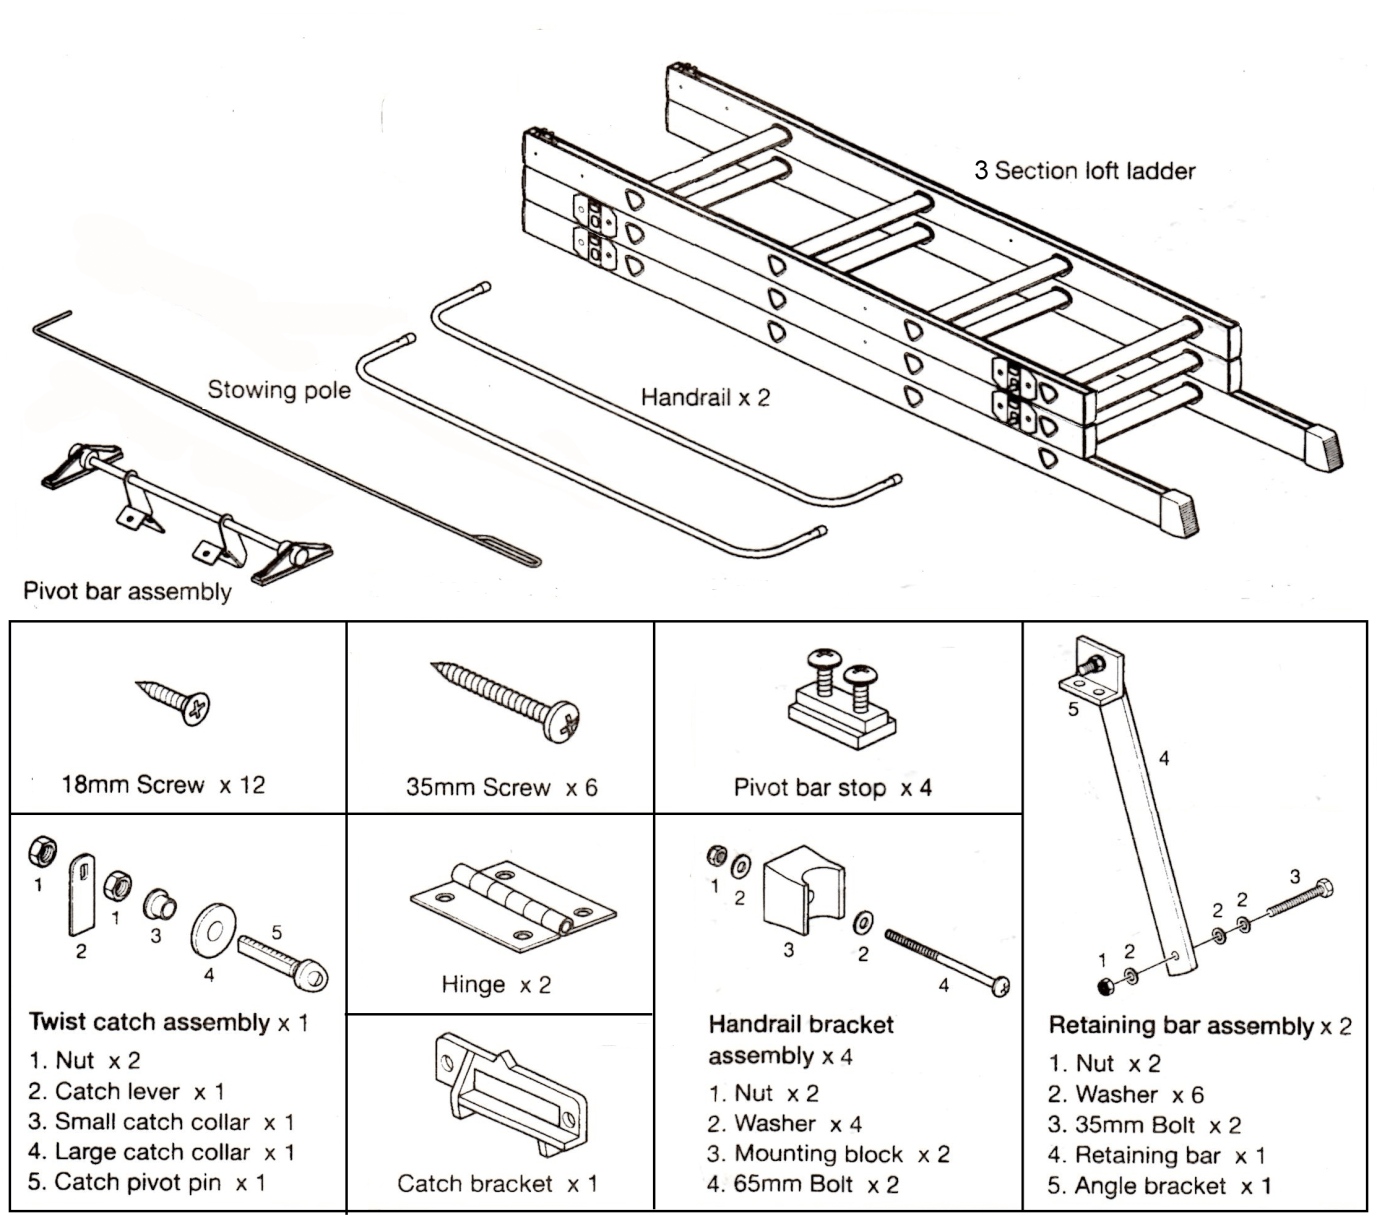 Instructions On How To Fit A Sliding Loft Ladder